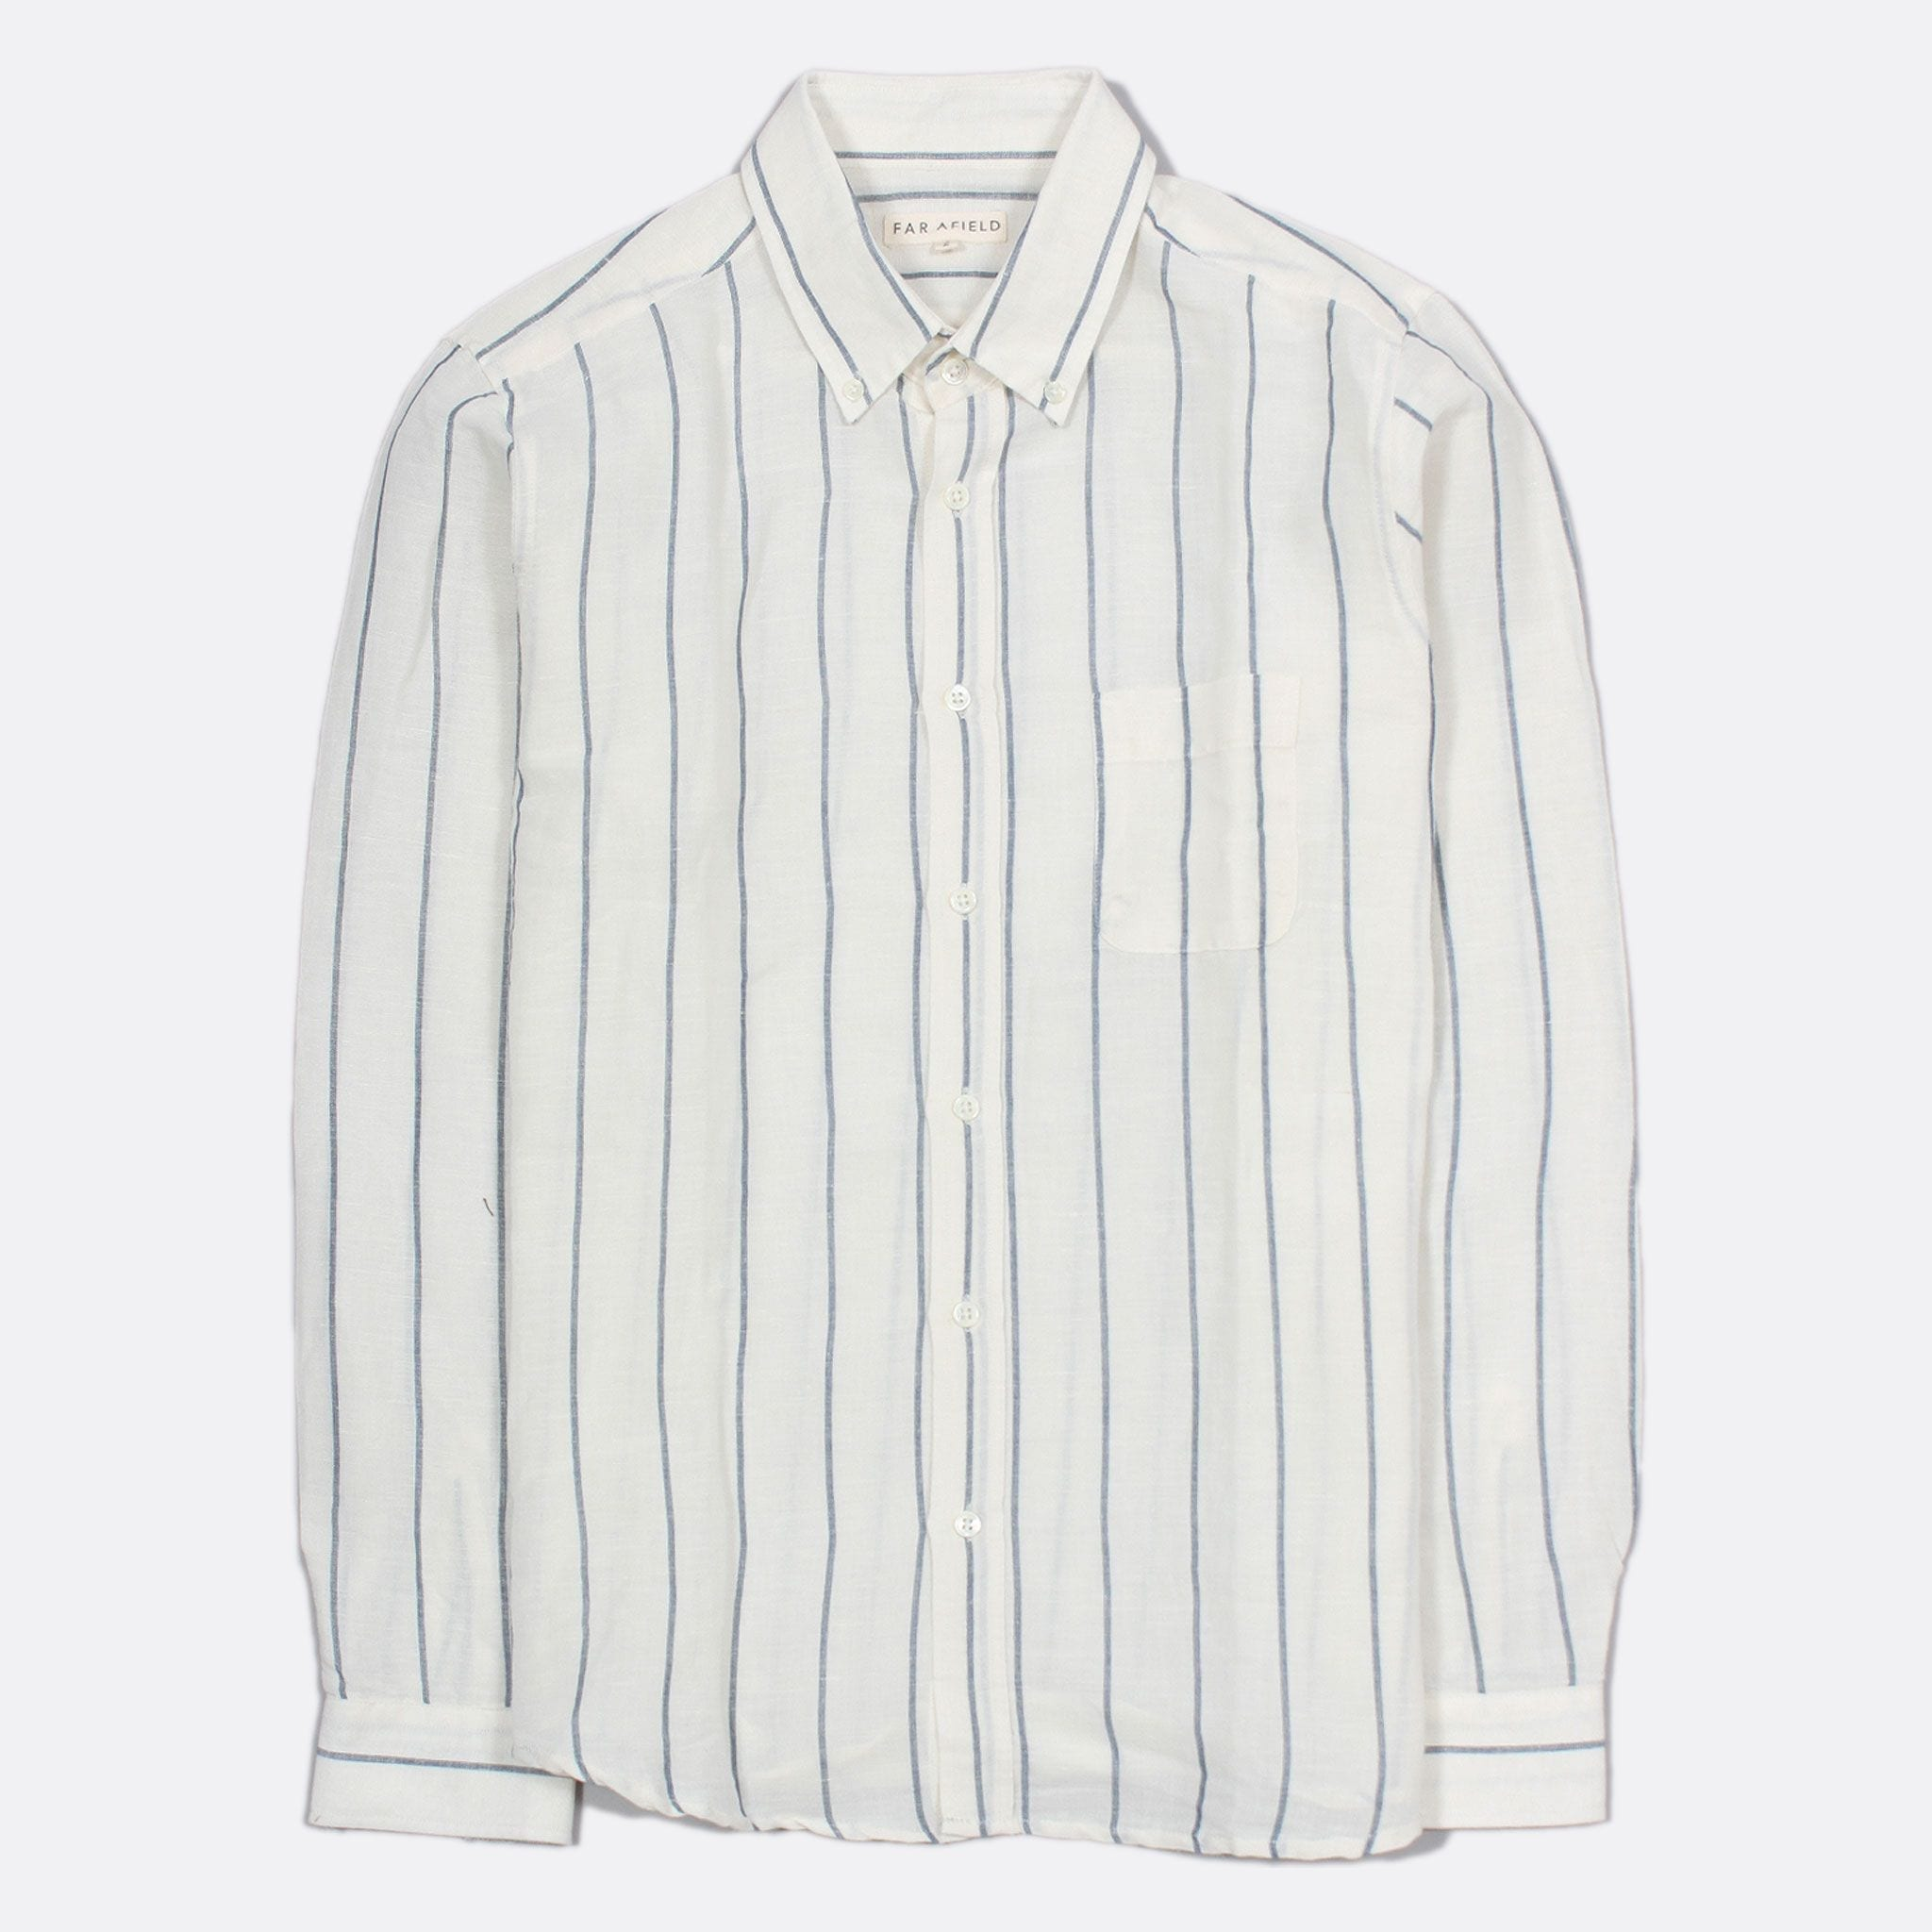 Far Afield Mod Button Down Long Sleeve Shirt a Cotton Off-White Classic Tailored Fabric